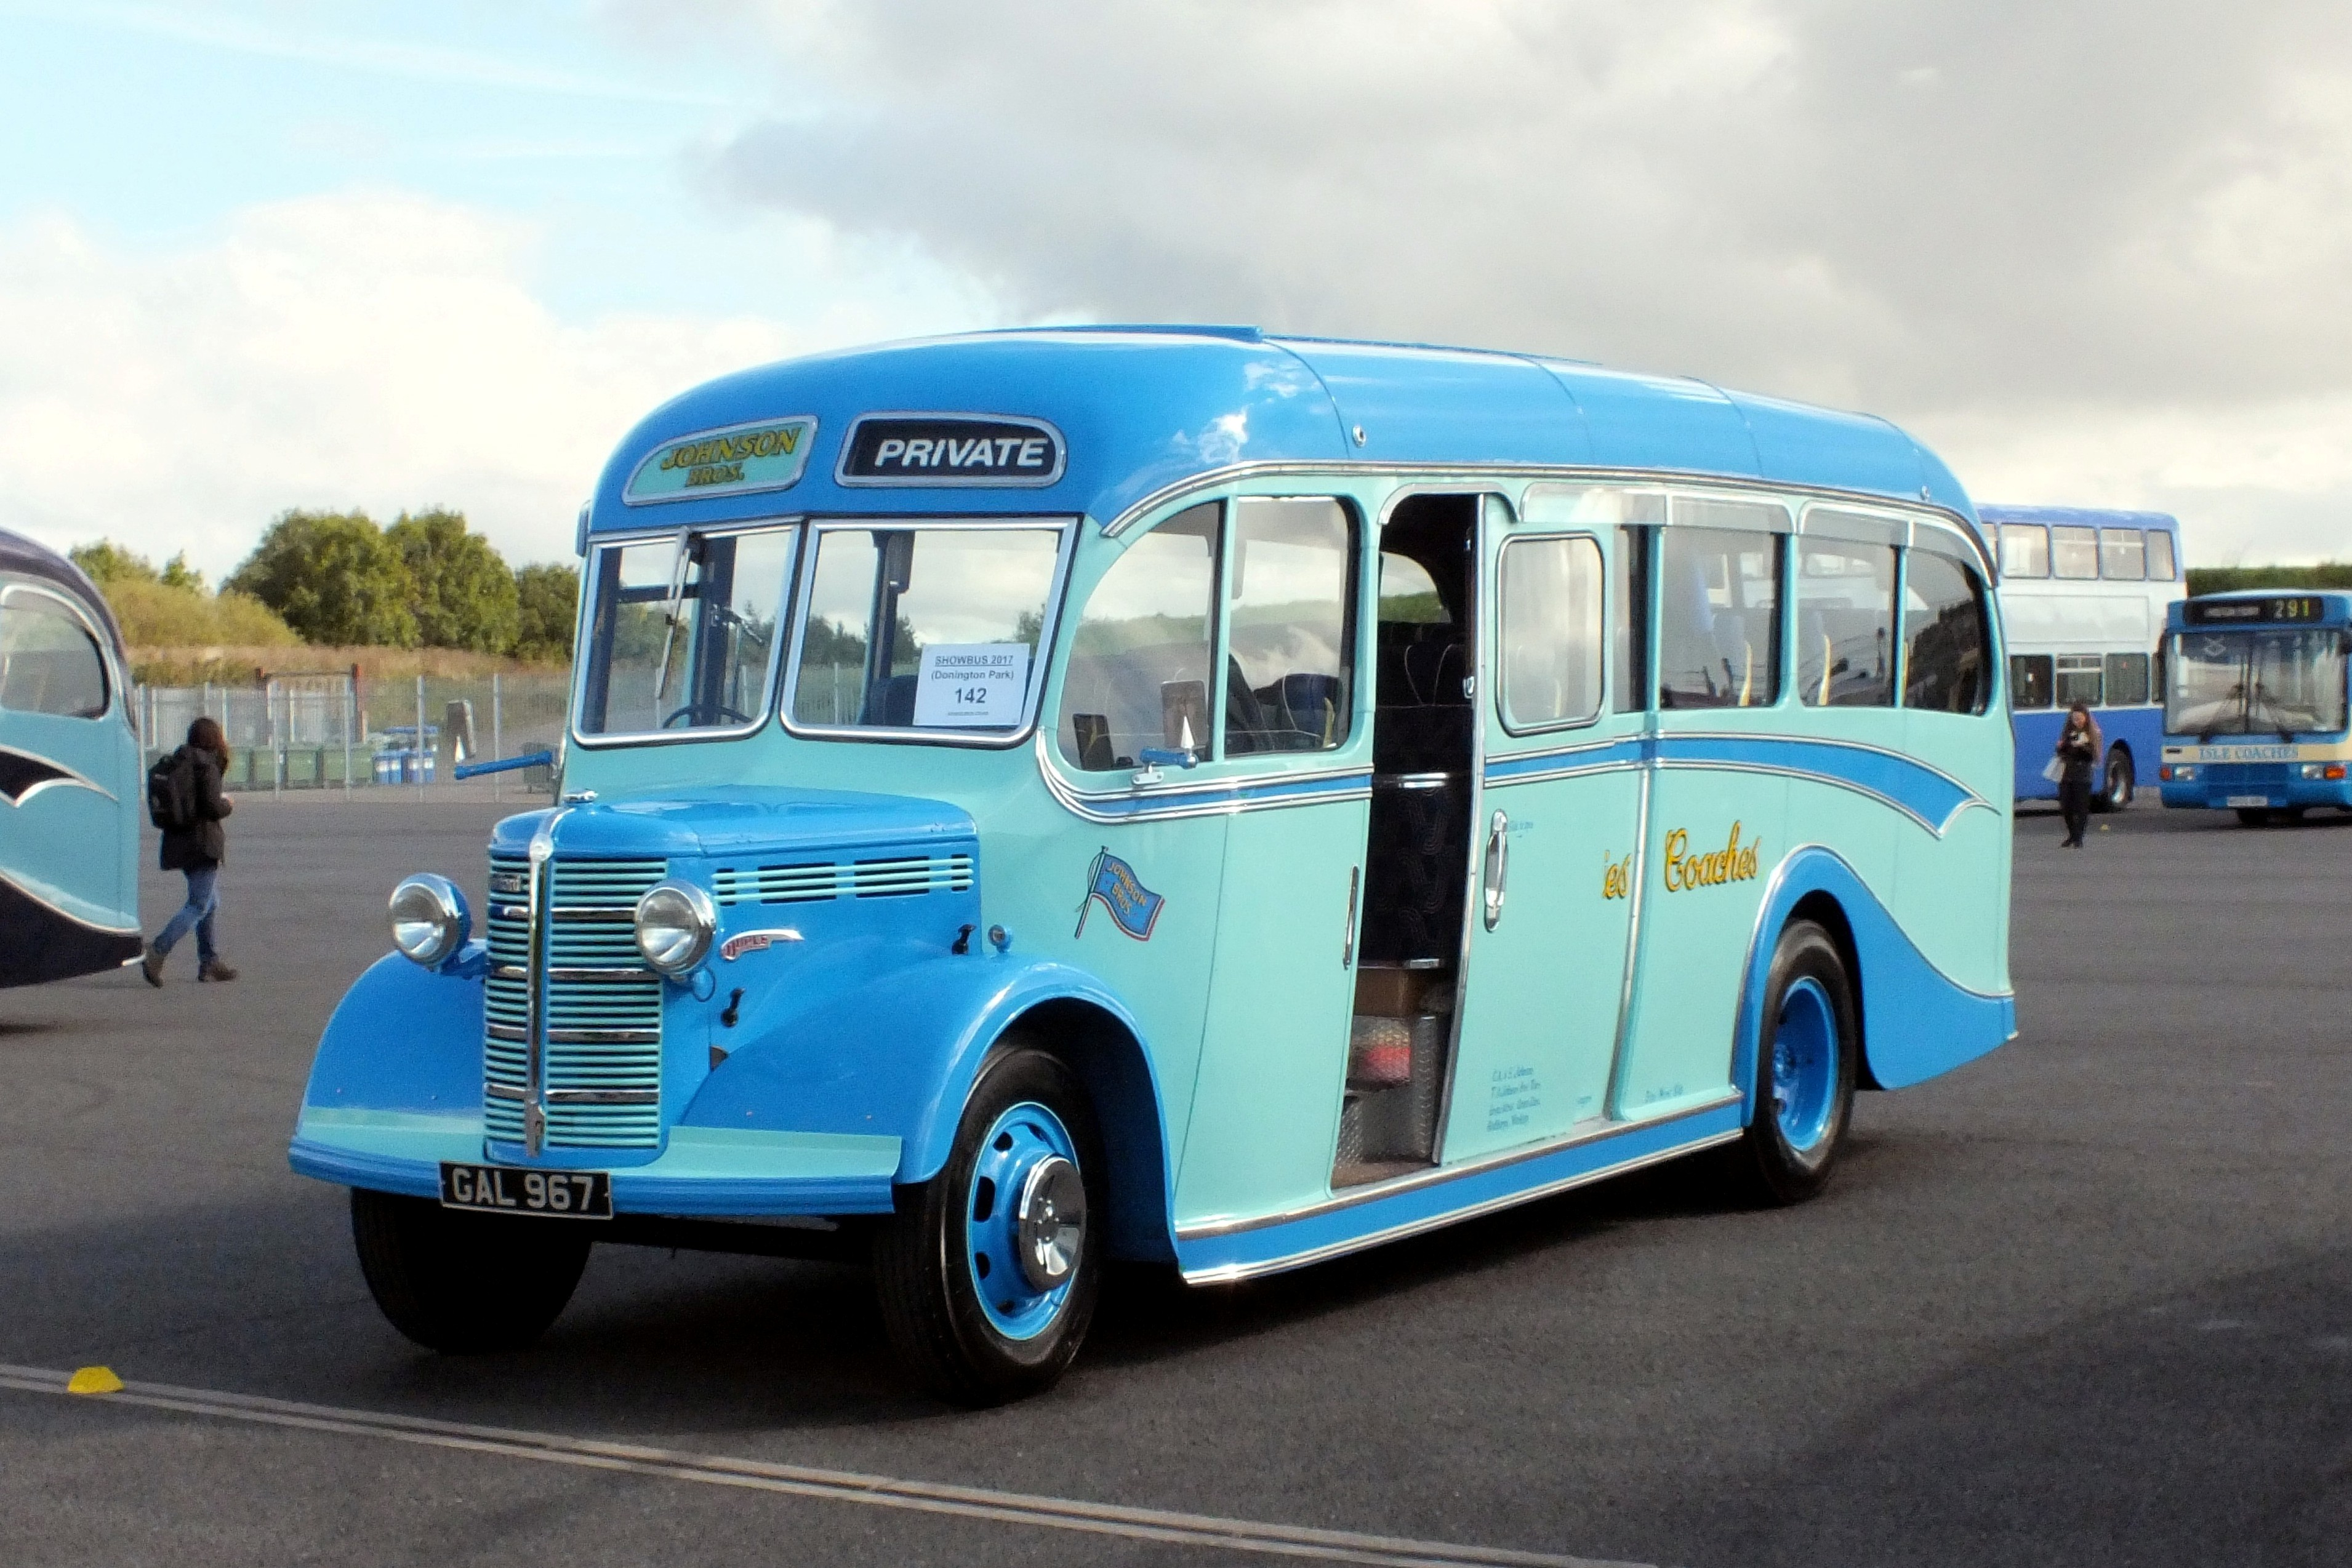 17 September 2017 Showbus, Donington. 450.jpg